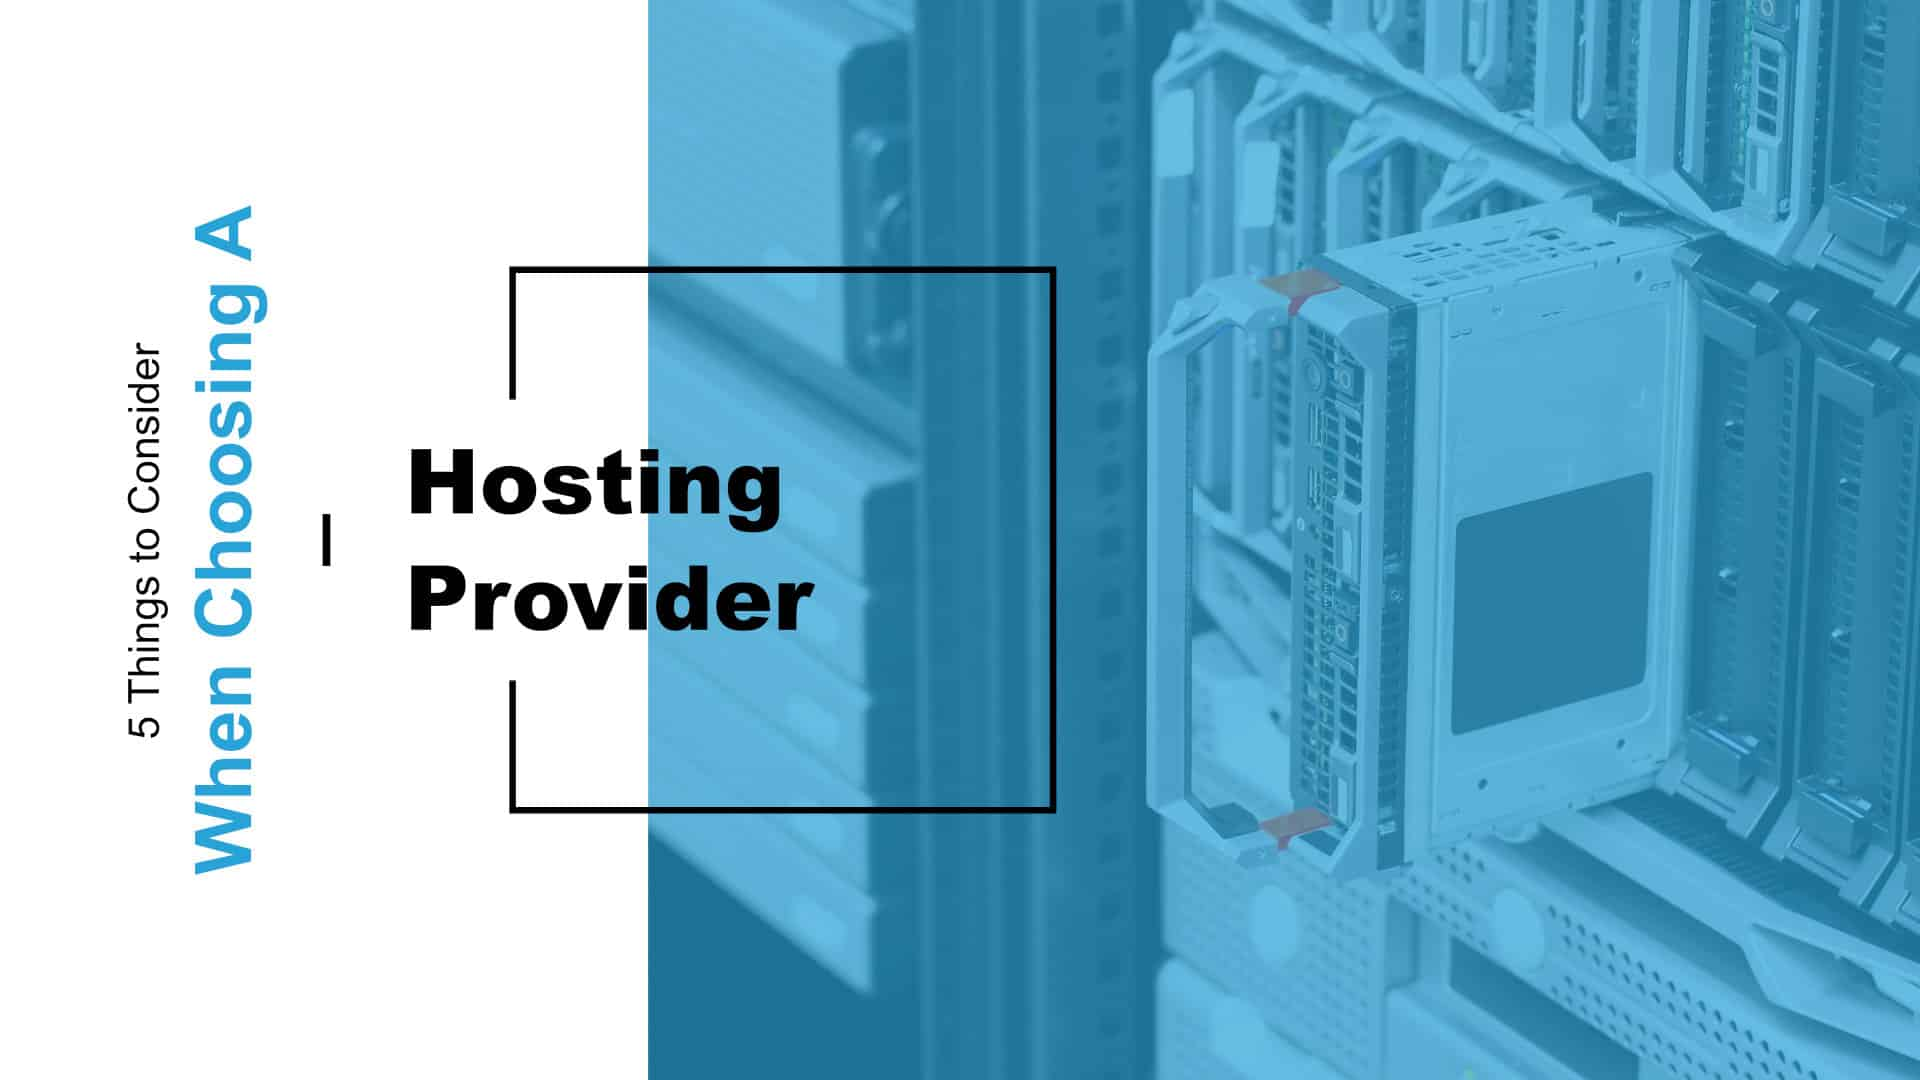 5 Things to Consider When Choosing a Hosting Provider Featured Image